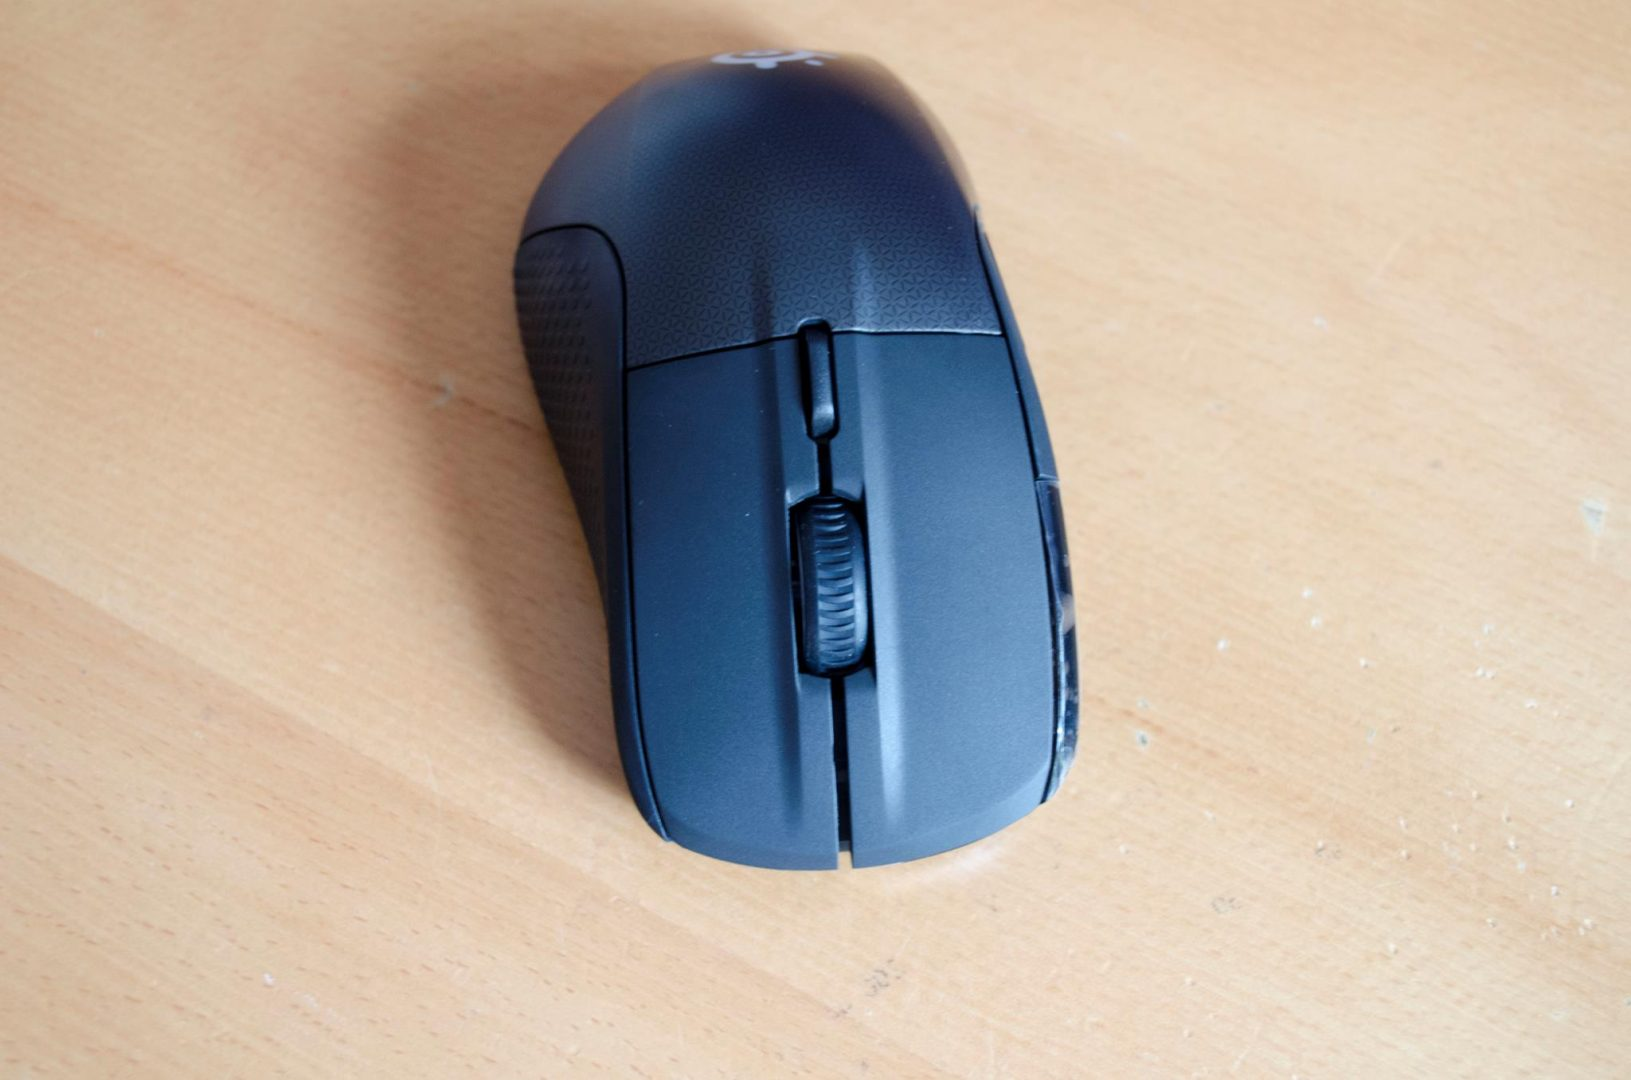 steelseries rival 700 gaming mouse_6